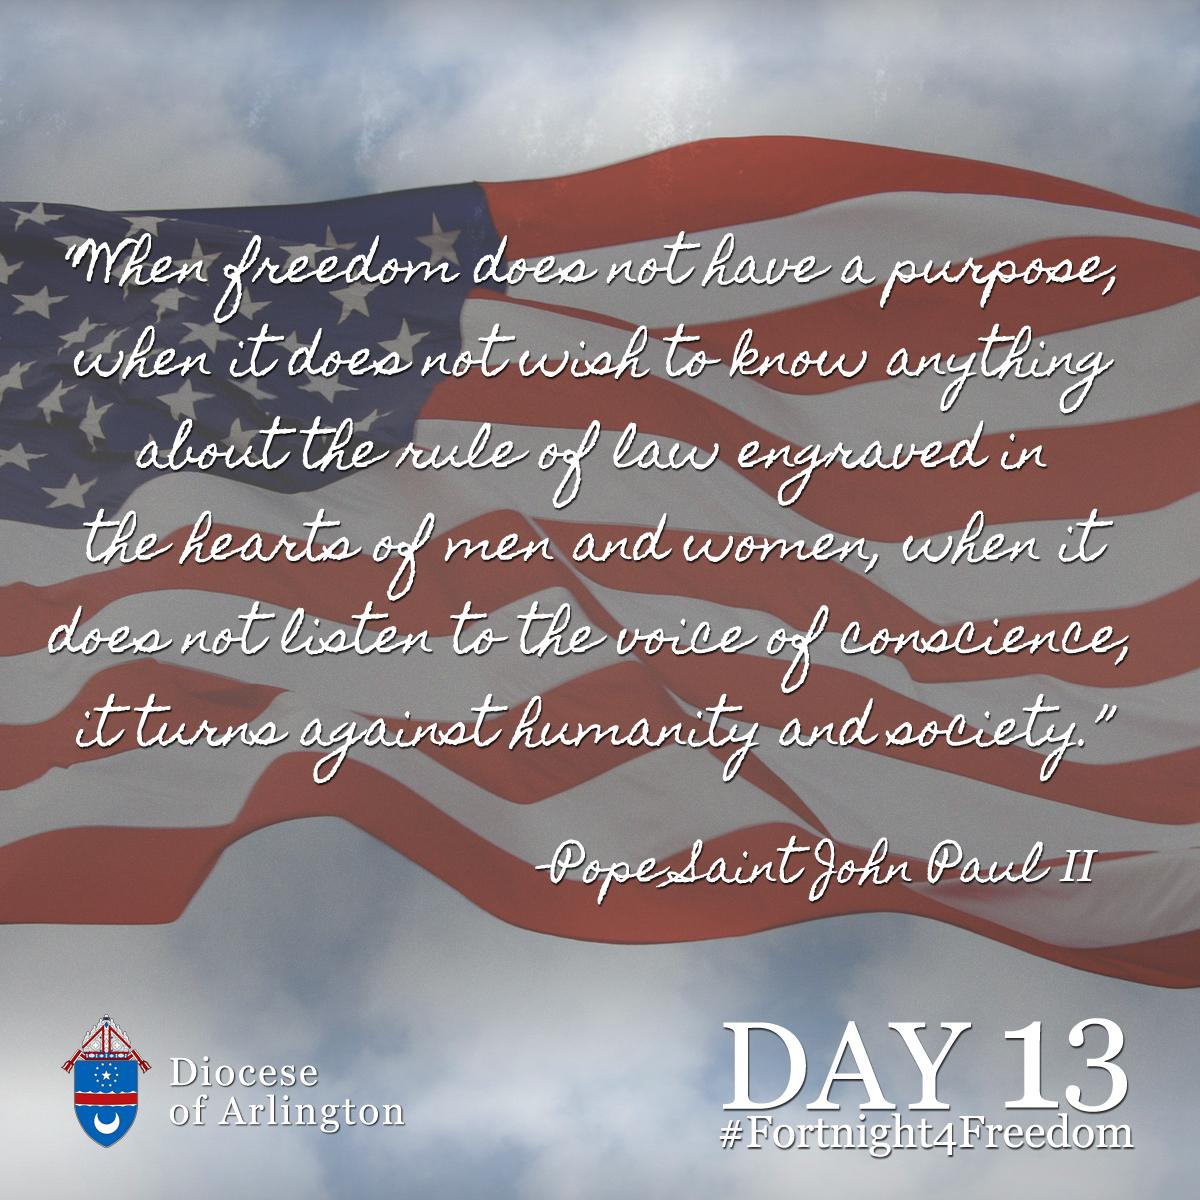 When freedom does not have a purpose it turns against humanity & society. ―Pope Saint John Paul II #Fortnight4Freedom http://t.co/Lb4o56OPKR